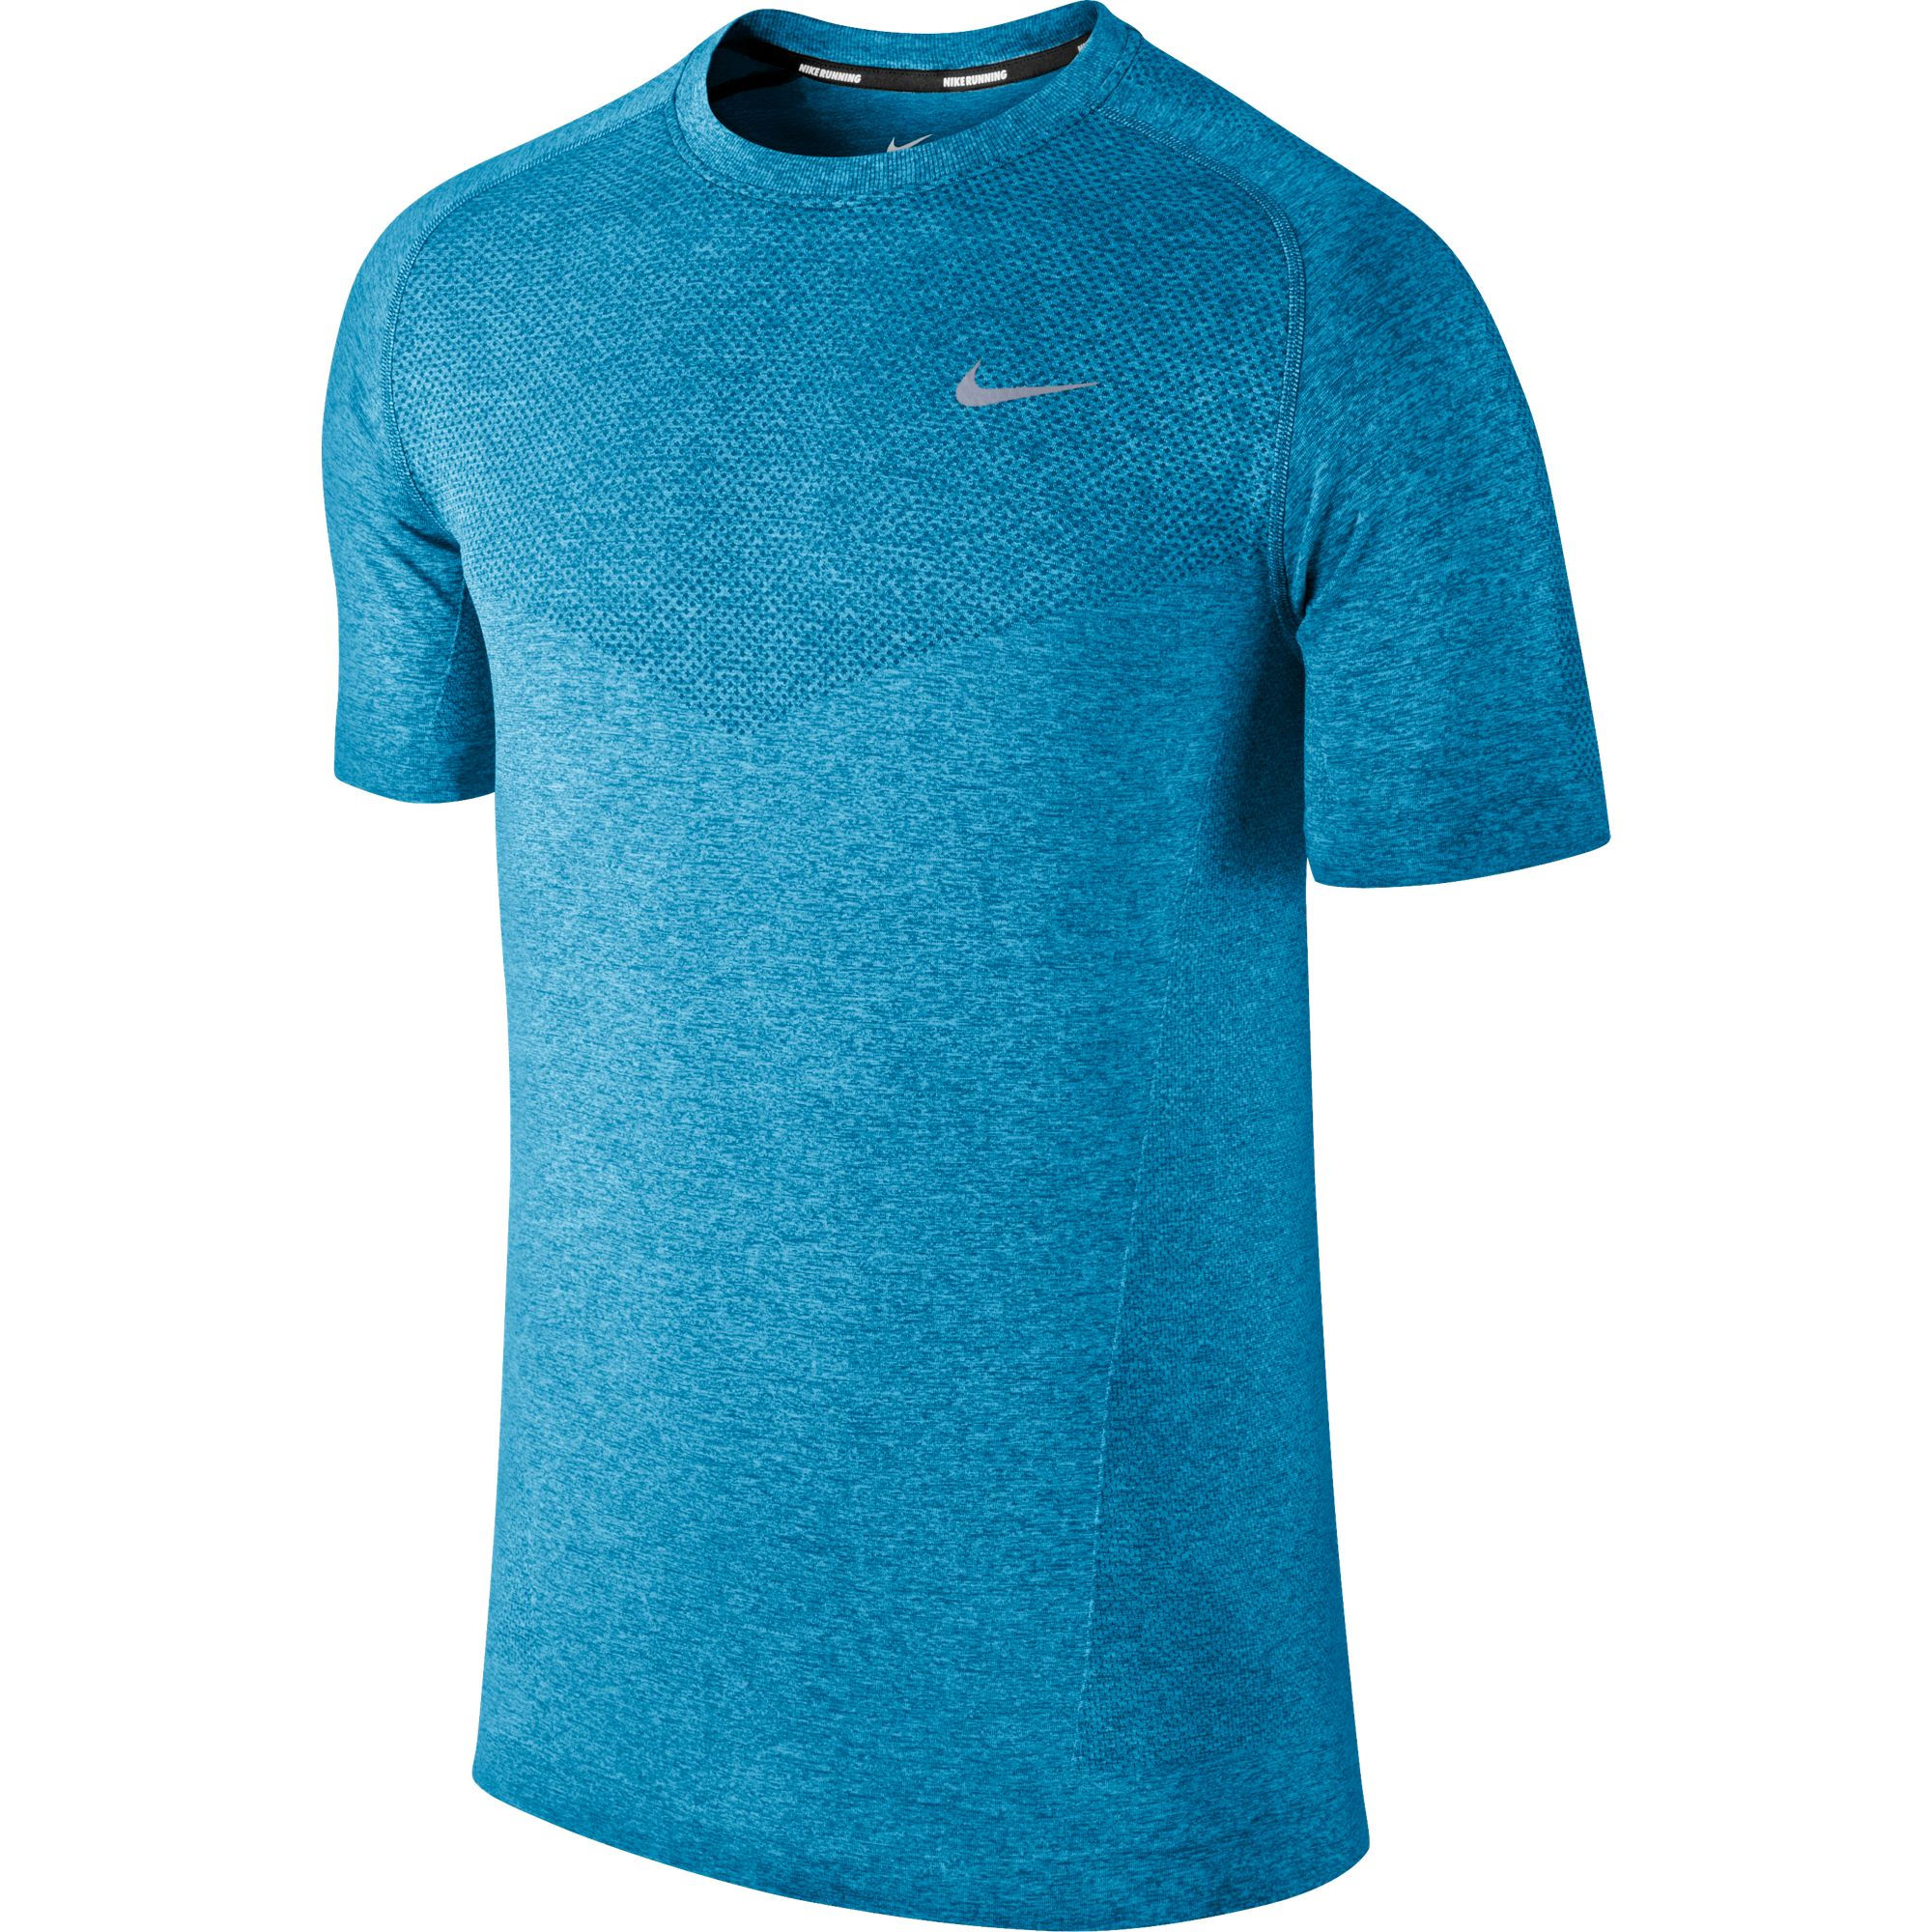 Wiggle nike dri fit knit short sleeve sp14 running for Dri fit dress shirts